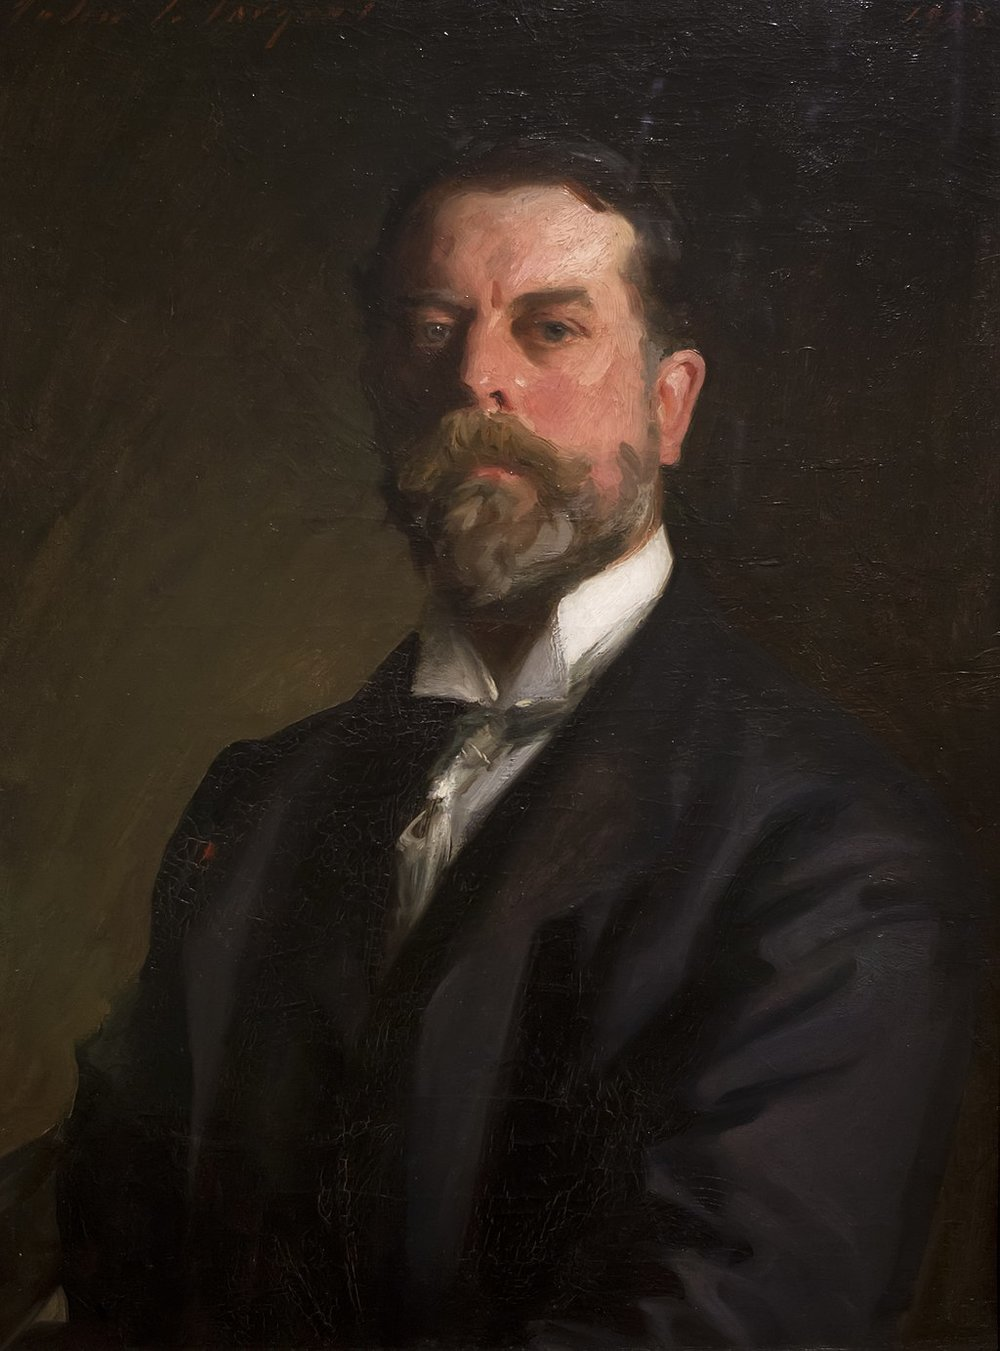 John Singer Sargent 1856 - 1925   John Singer Sargent showed his knack for painting at a young age. In his late teens, he enrolled in an art class that took place in Florence at the Accademia delle Belle Arti. During the winter of 1873-74, Sargent sharpened his skill with a paintbrush, which proved to his father it was worth encouraging his son to chase after art. Eventually, Sargent did quite a bit of traveling. In Spain, he admired and copied the works of Diego Velasquez. In Venice, he admired the picturesque canals. Travel scenes became a major part of his work.